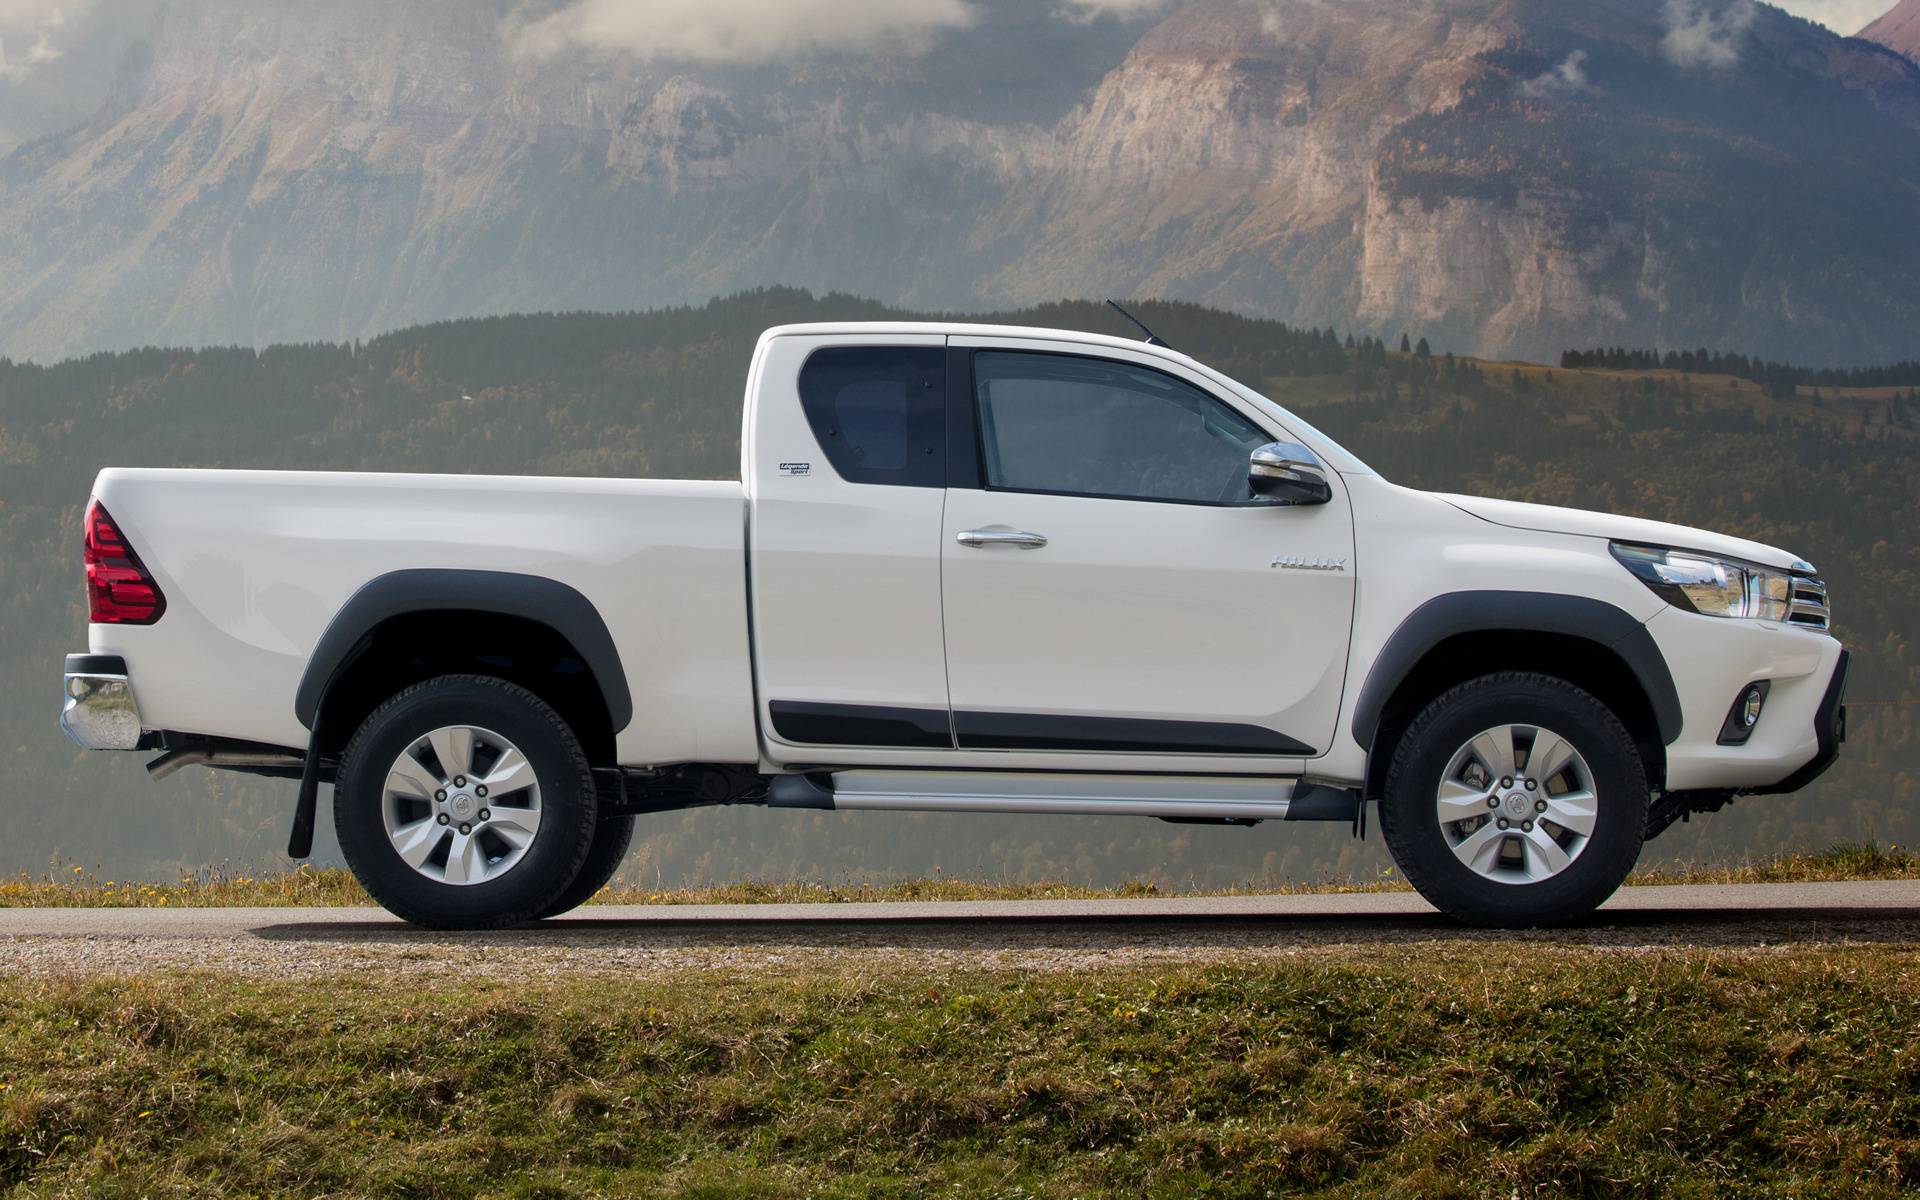 2018 Toyota Hilux Xtra Cab Legende Sport - Wallpapers and HD Images | Car Pixel